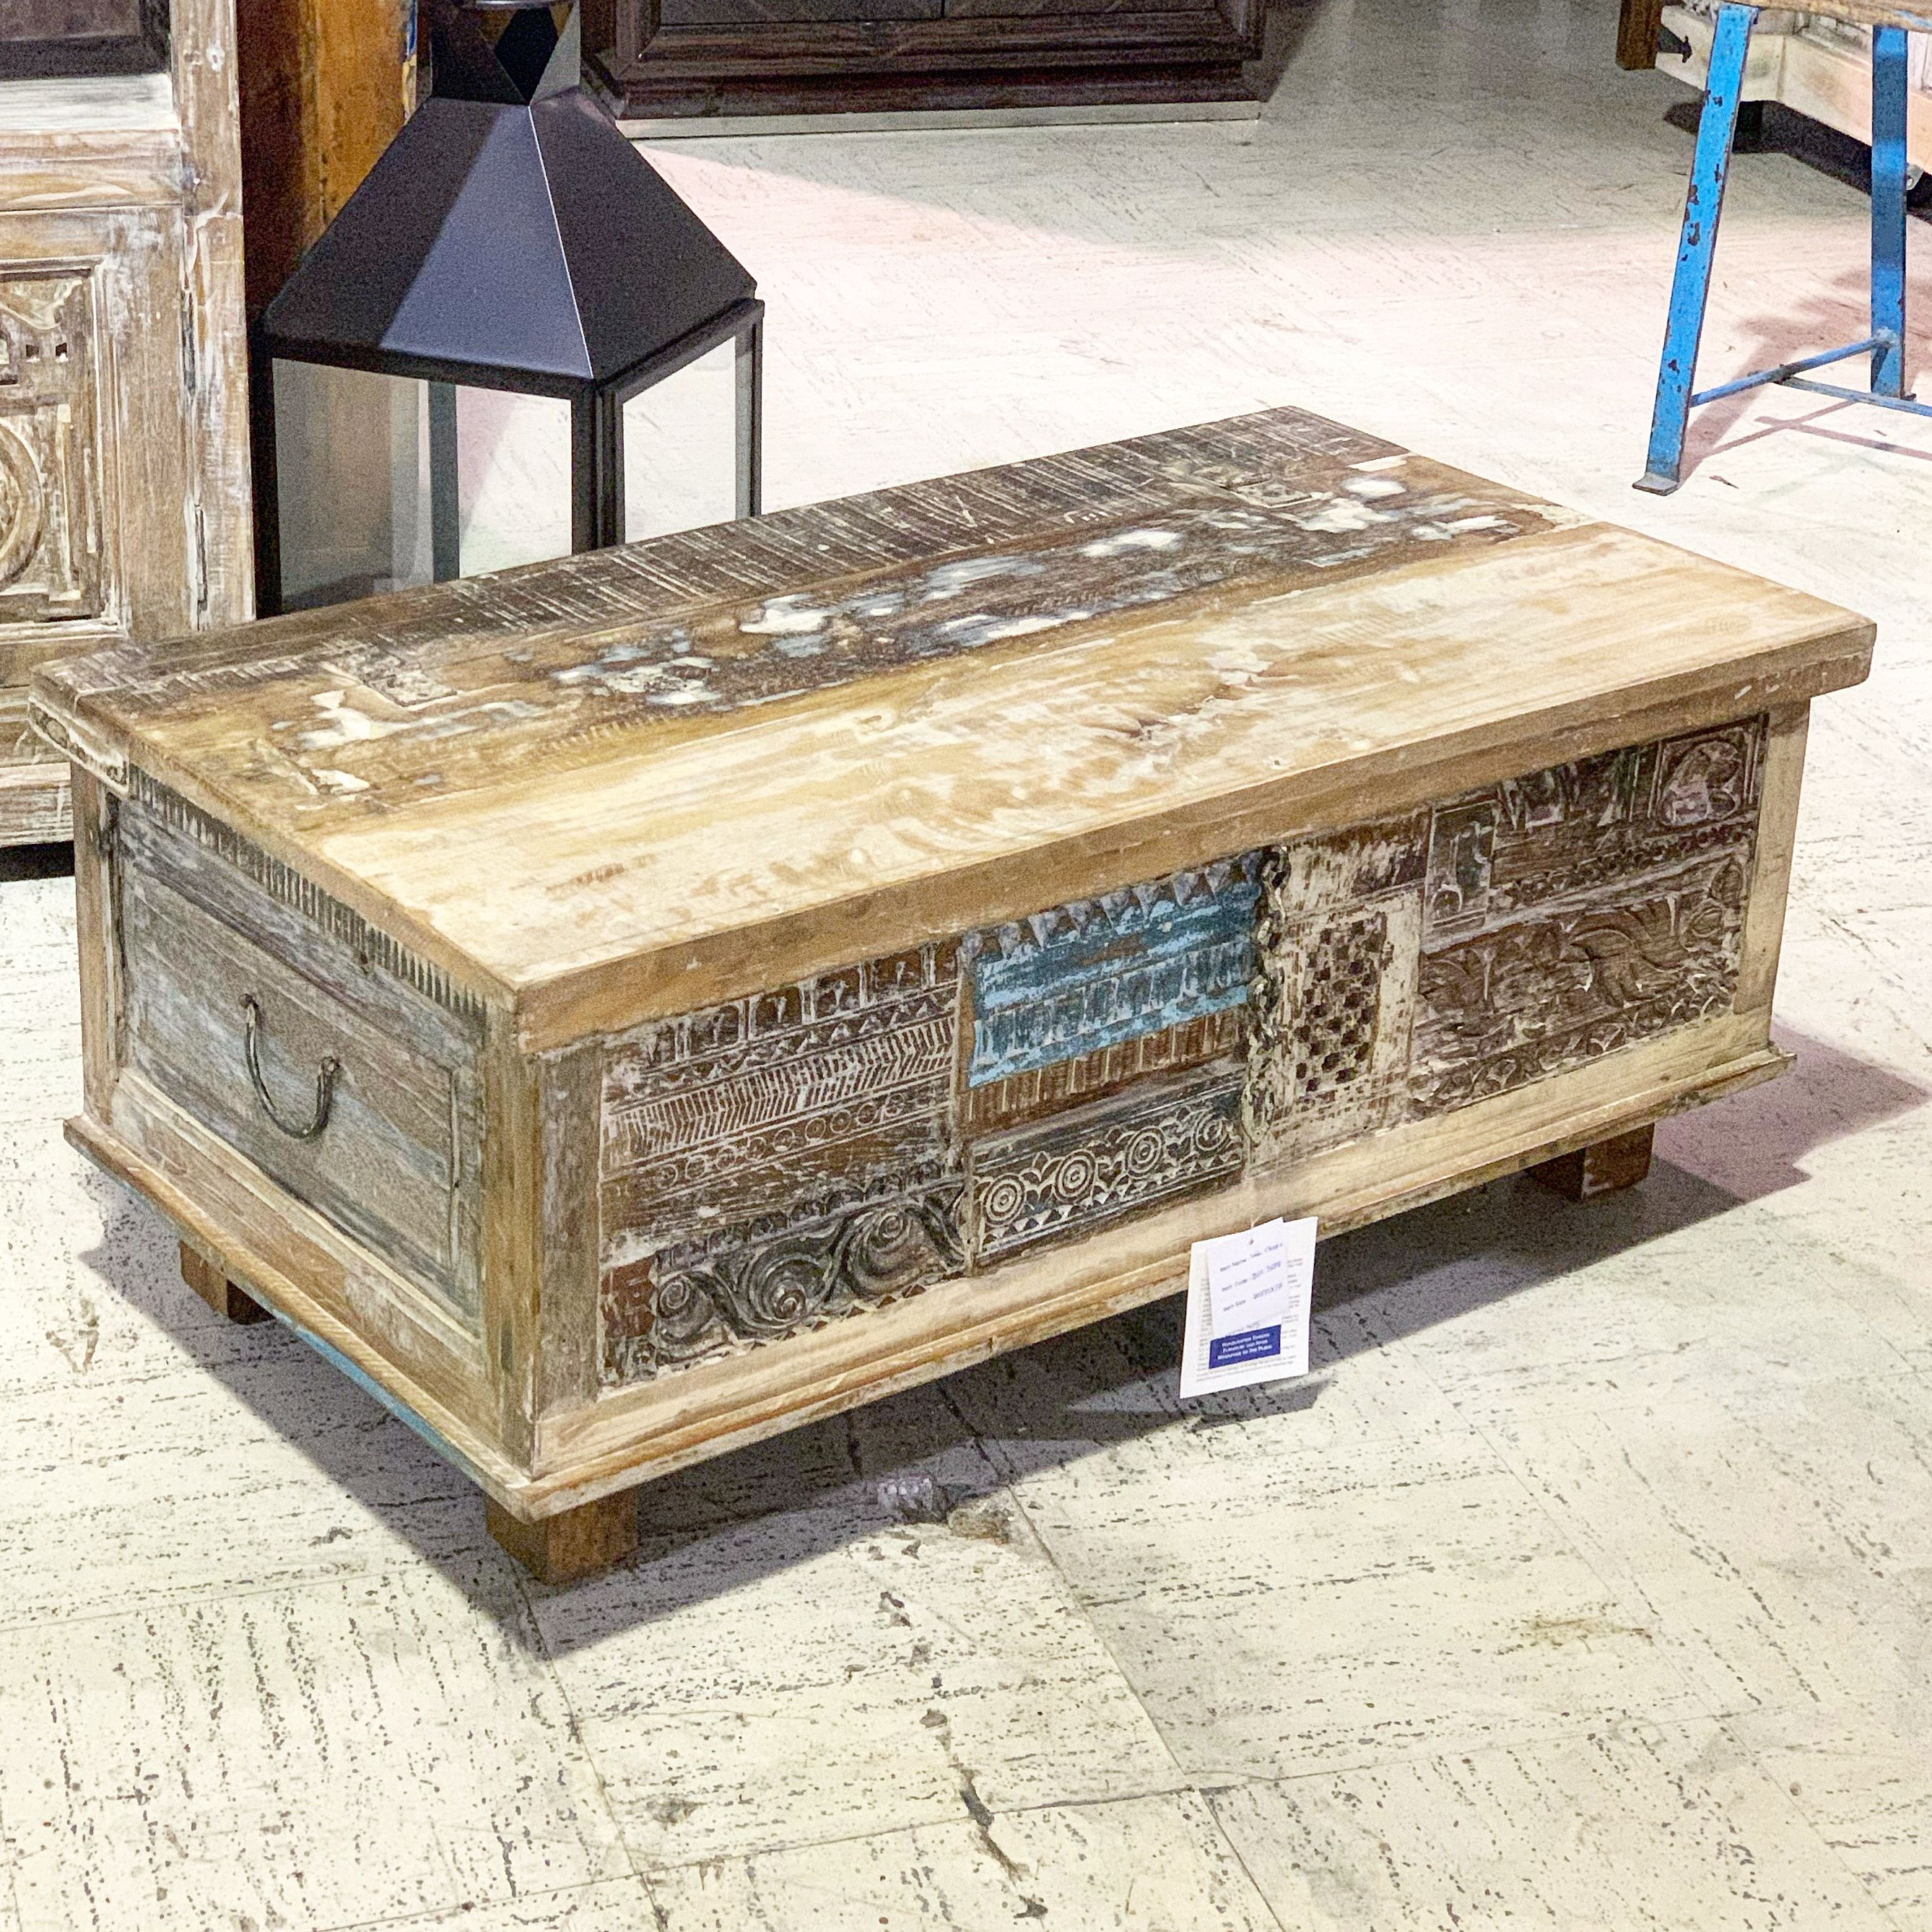 - Pin On Interesting Coffee Tables And Trunks